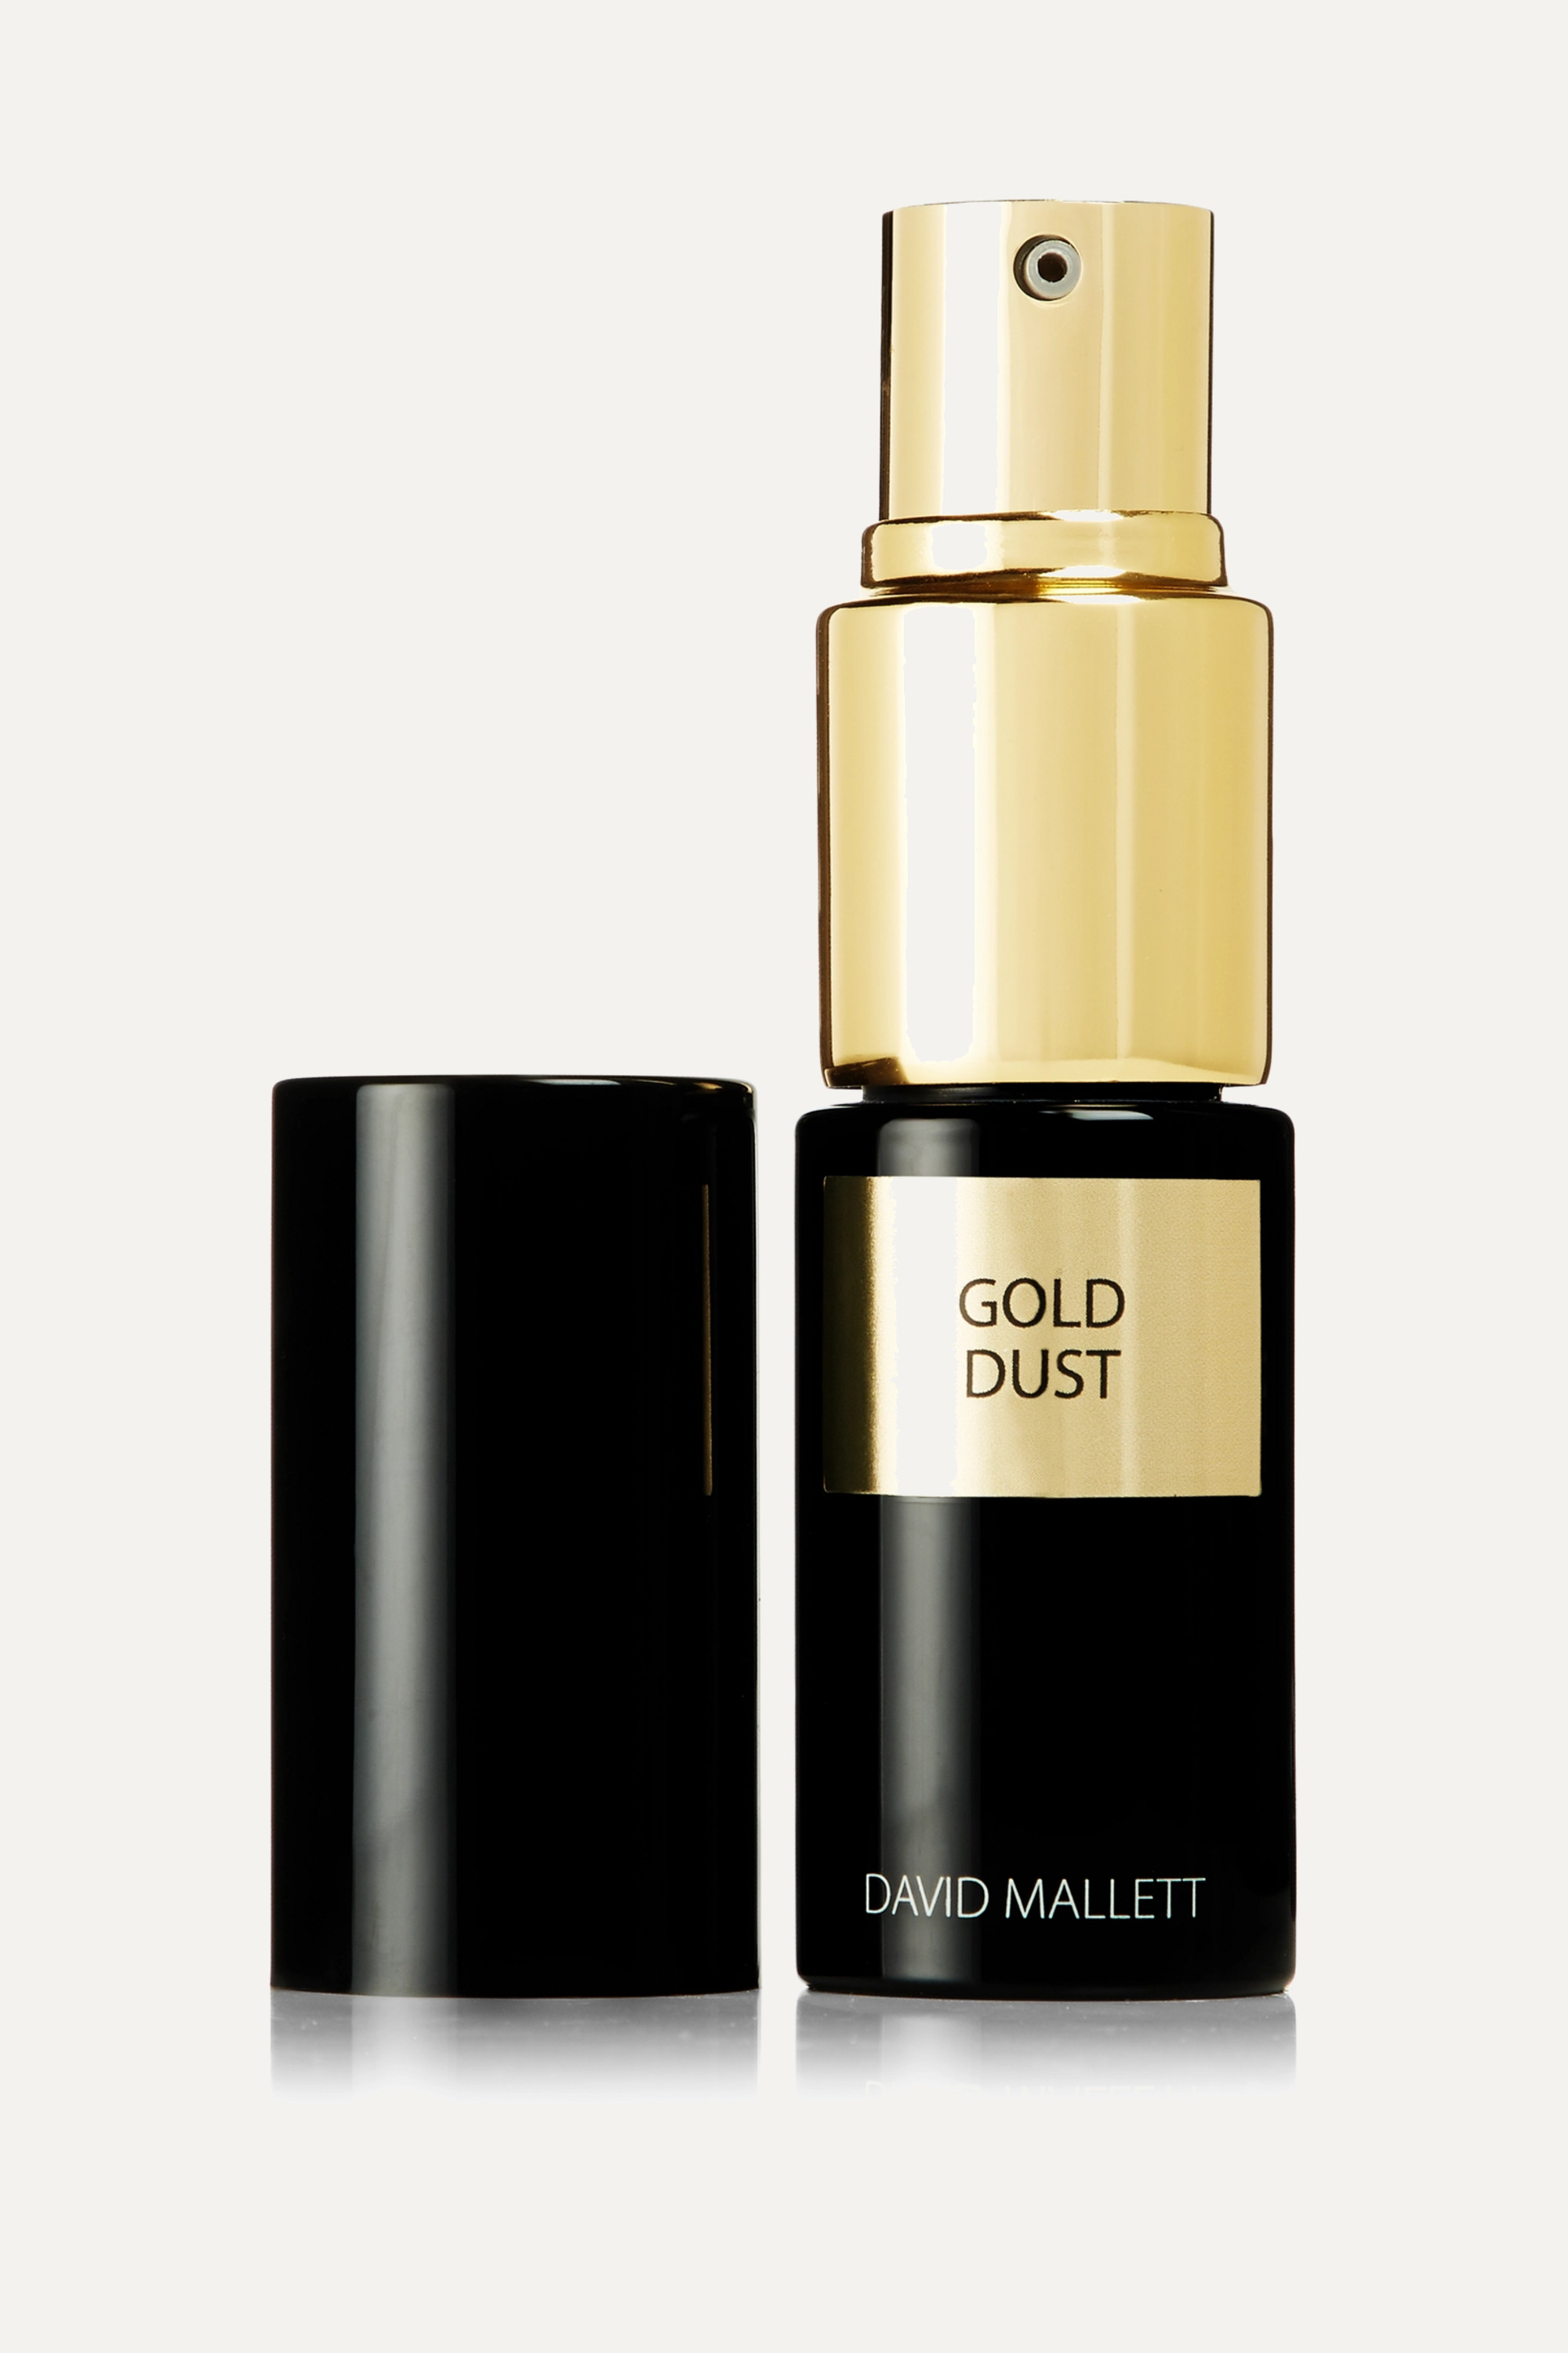 DAVID MALLETT Gold Dust, 7.5g